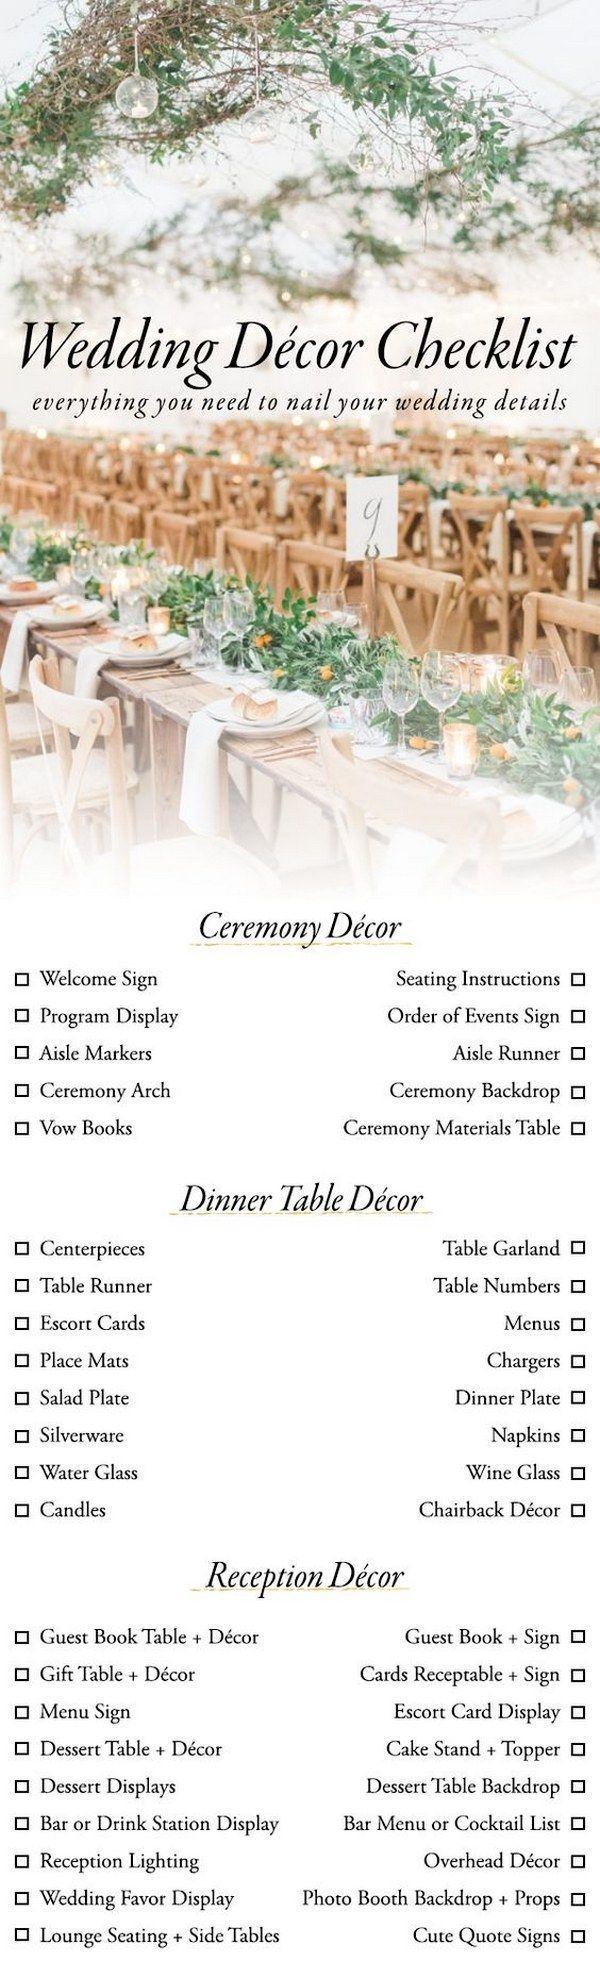 Use This Wedding Décor Checklist to Help You Nail Every Detail / http://www.deerpearlflowers.com/wedding-planning-infographics/4/ #weddingplanningchecklist